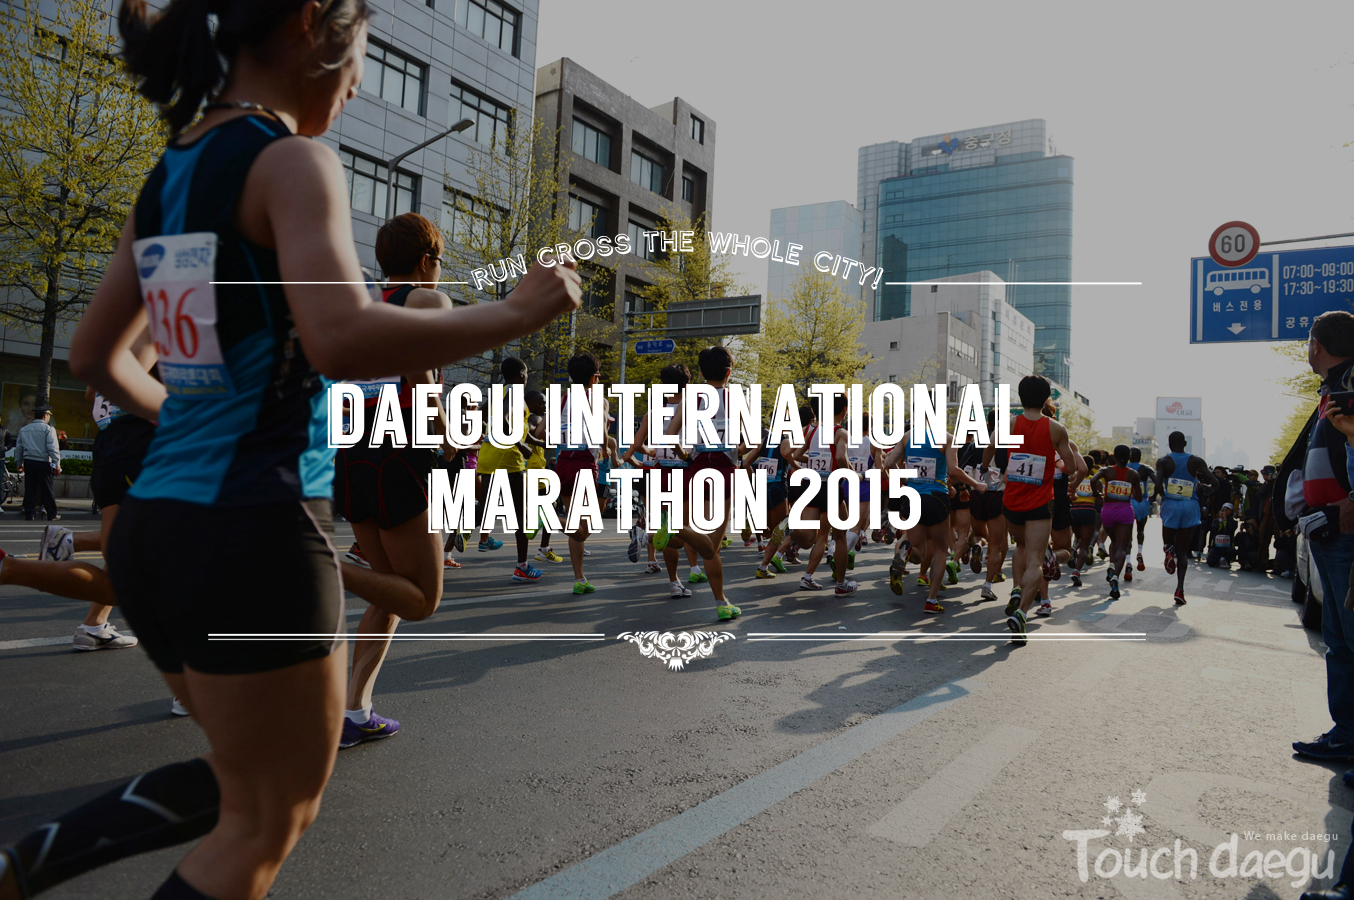 Daegu International Marathon 2015